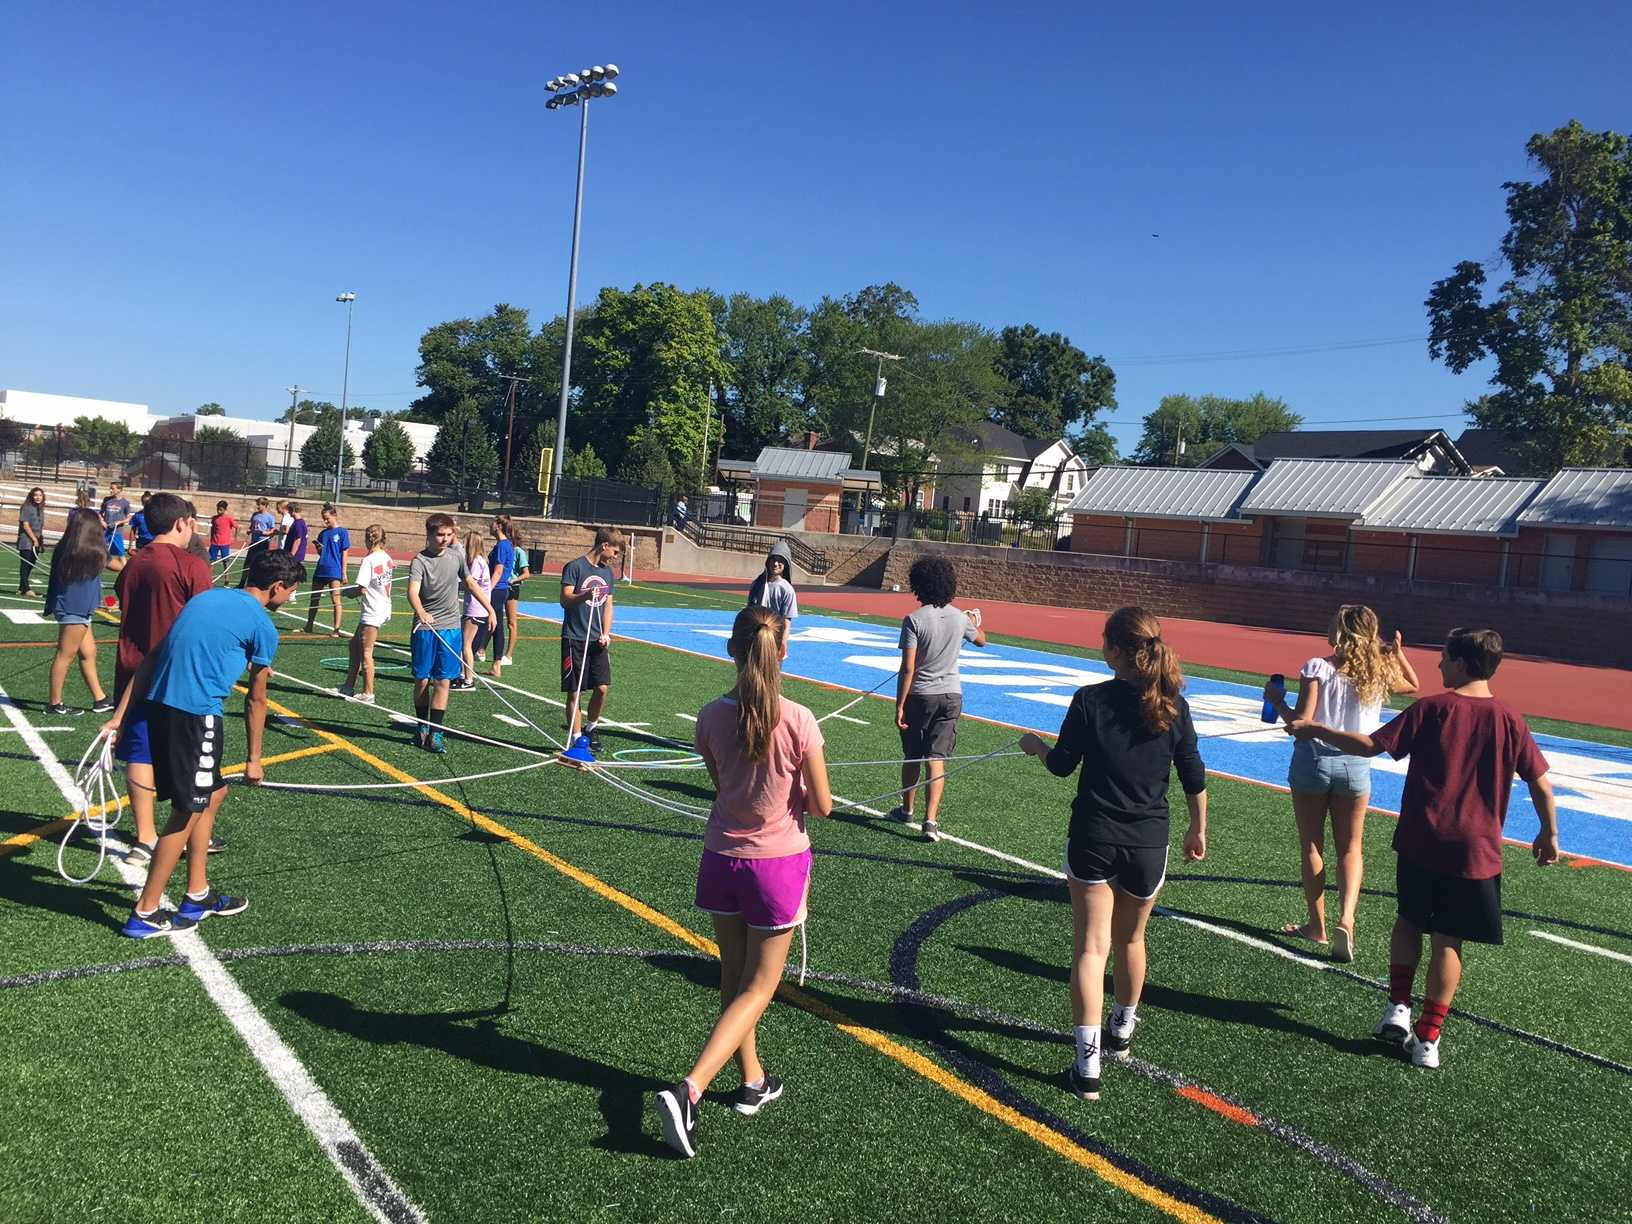 Freshmen work together to face an assortment of challenging games.